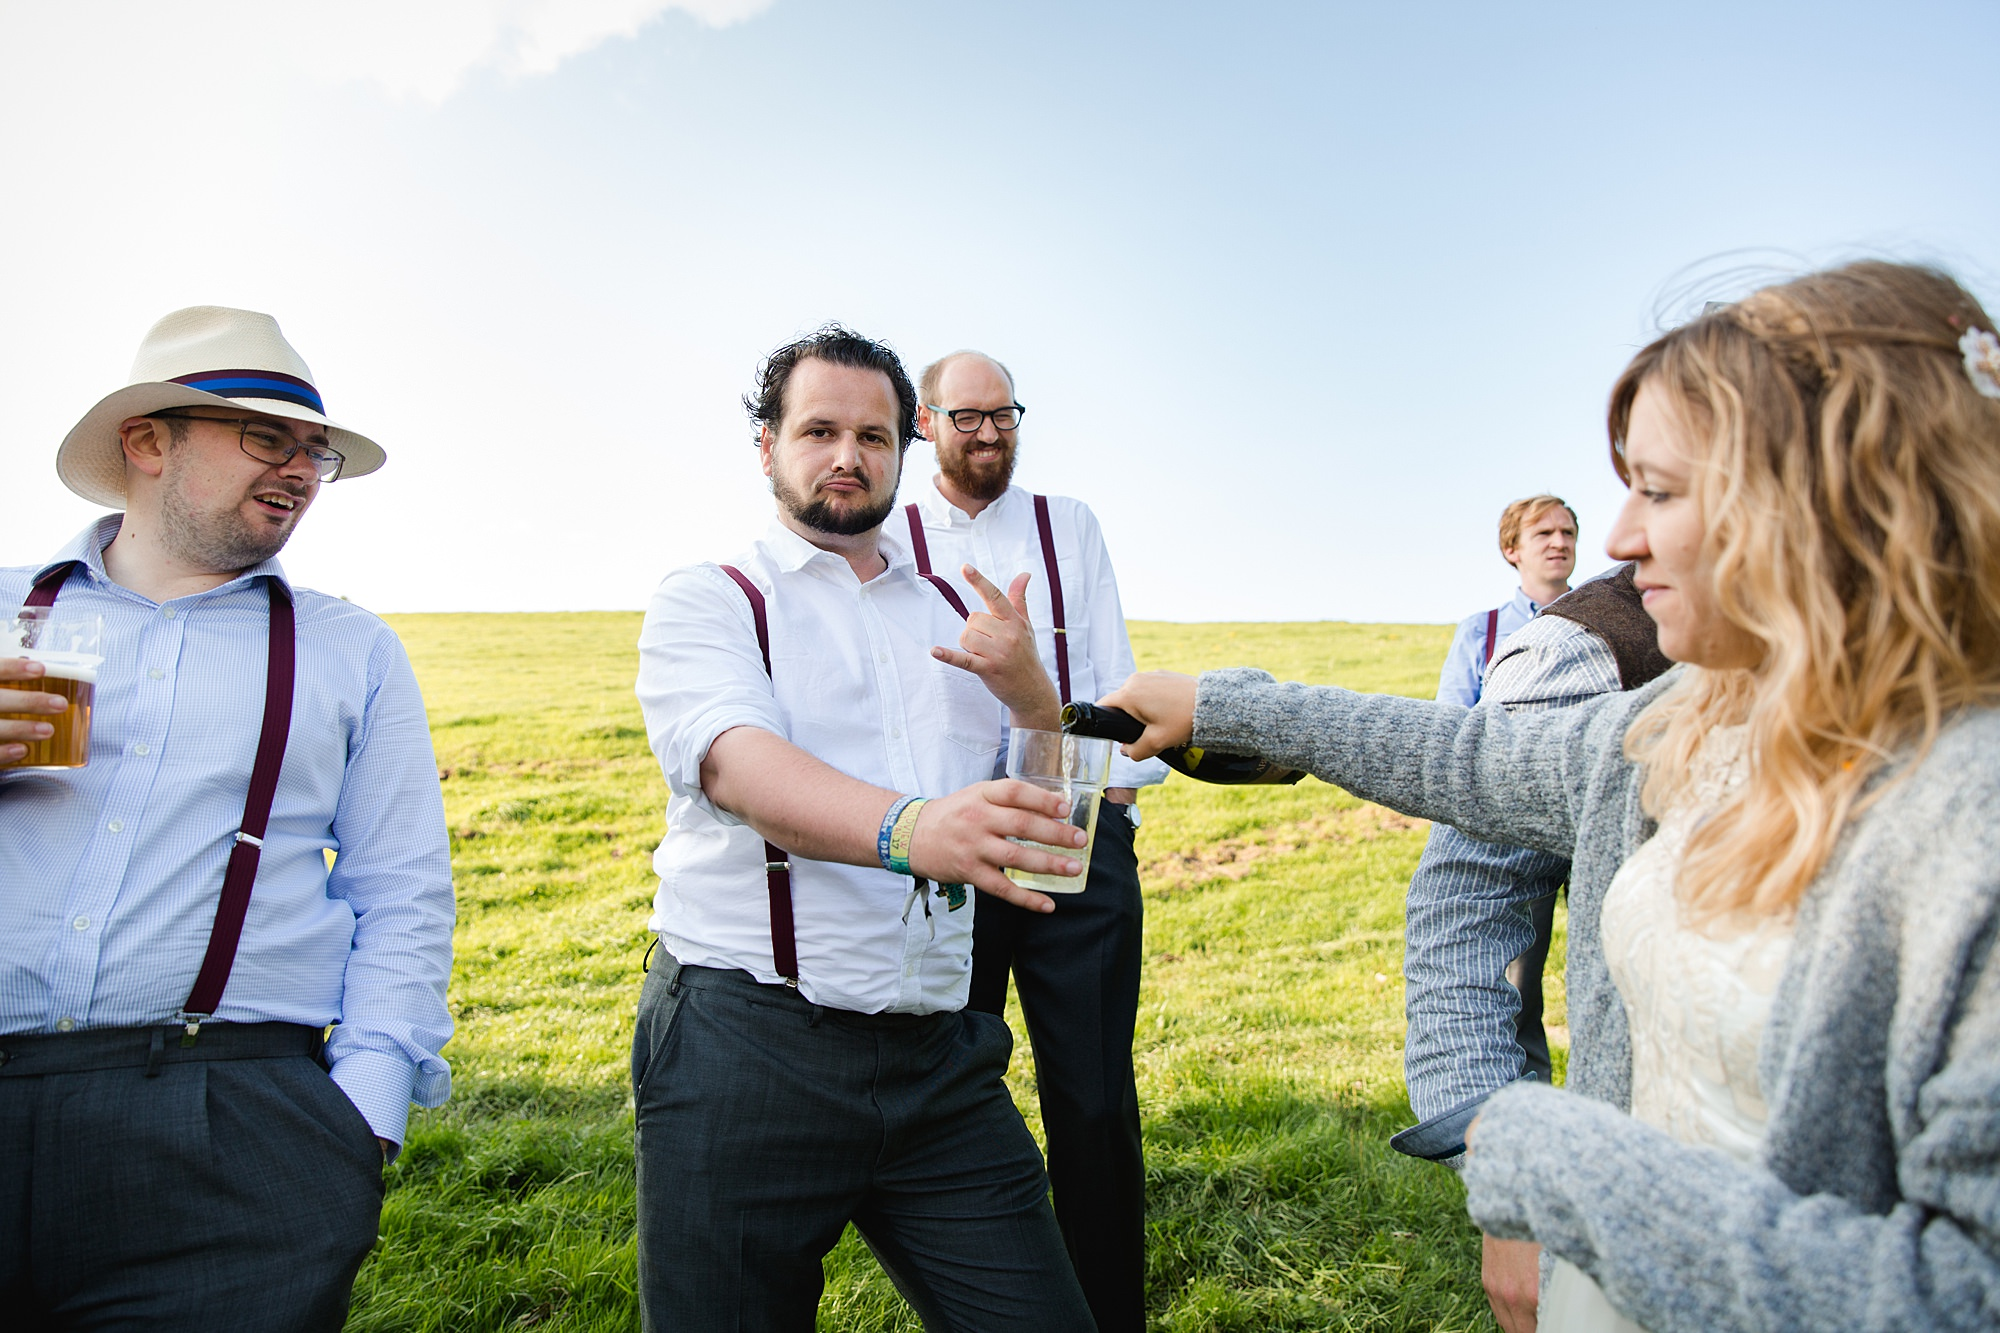 Fun village hall wedding bride pours champagne for groomsman